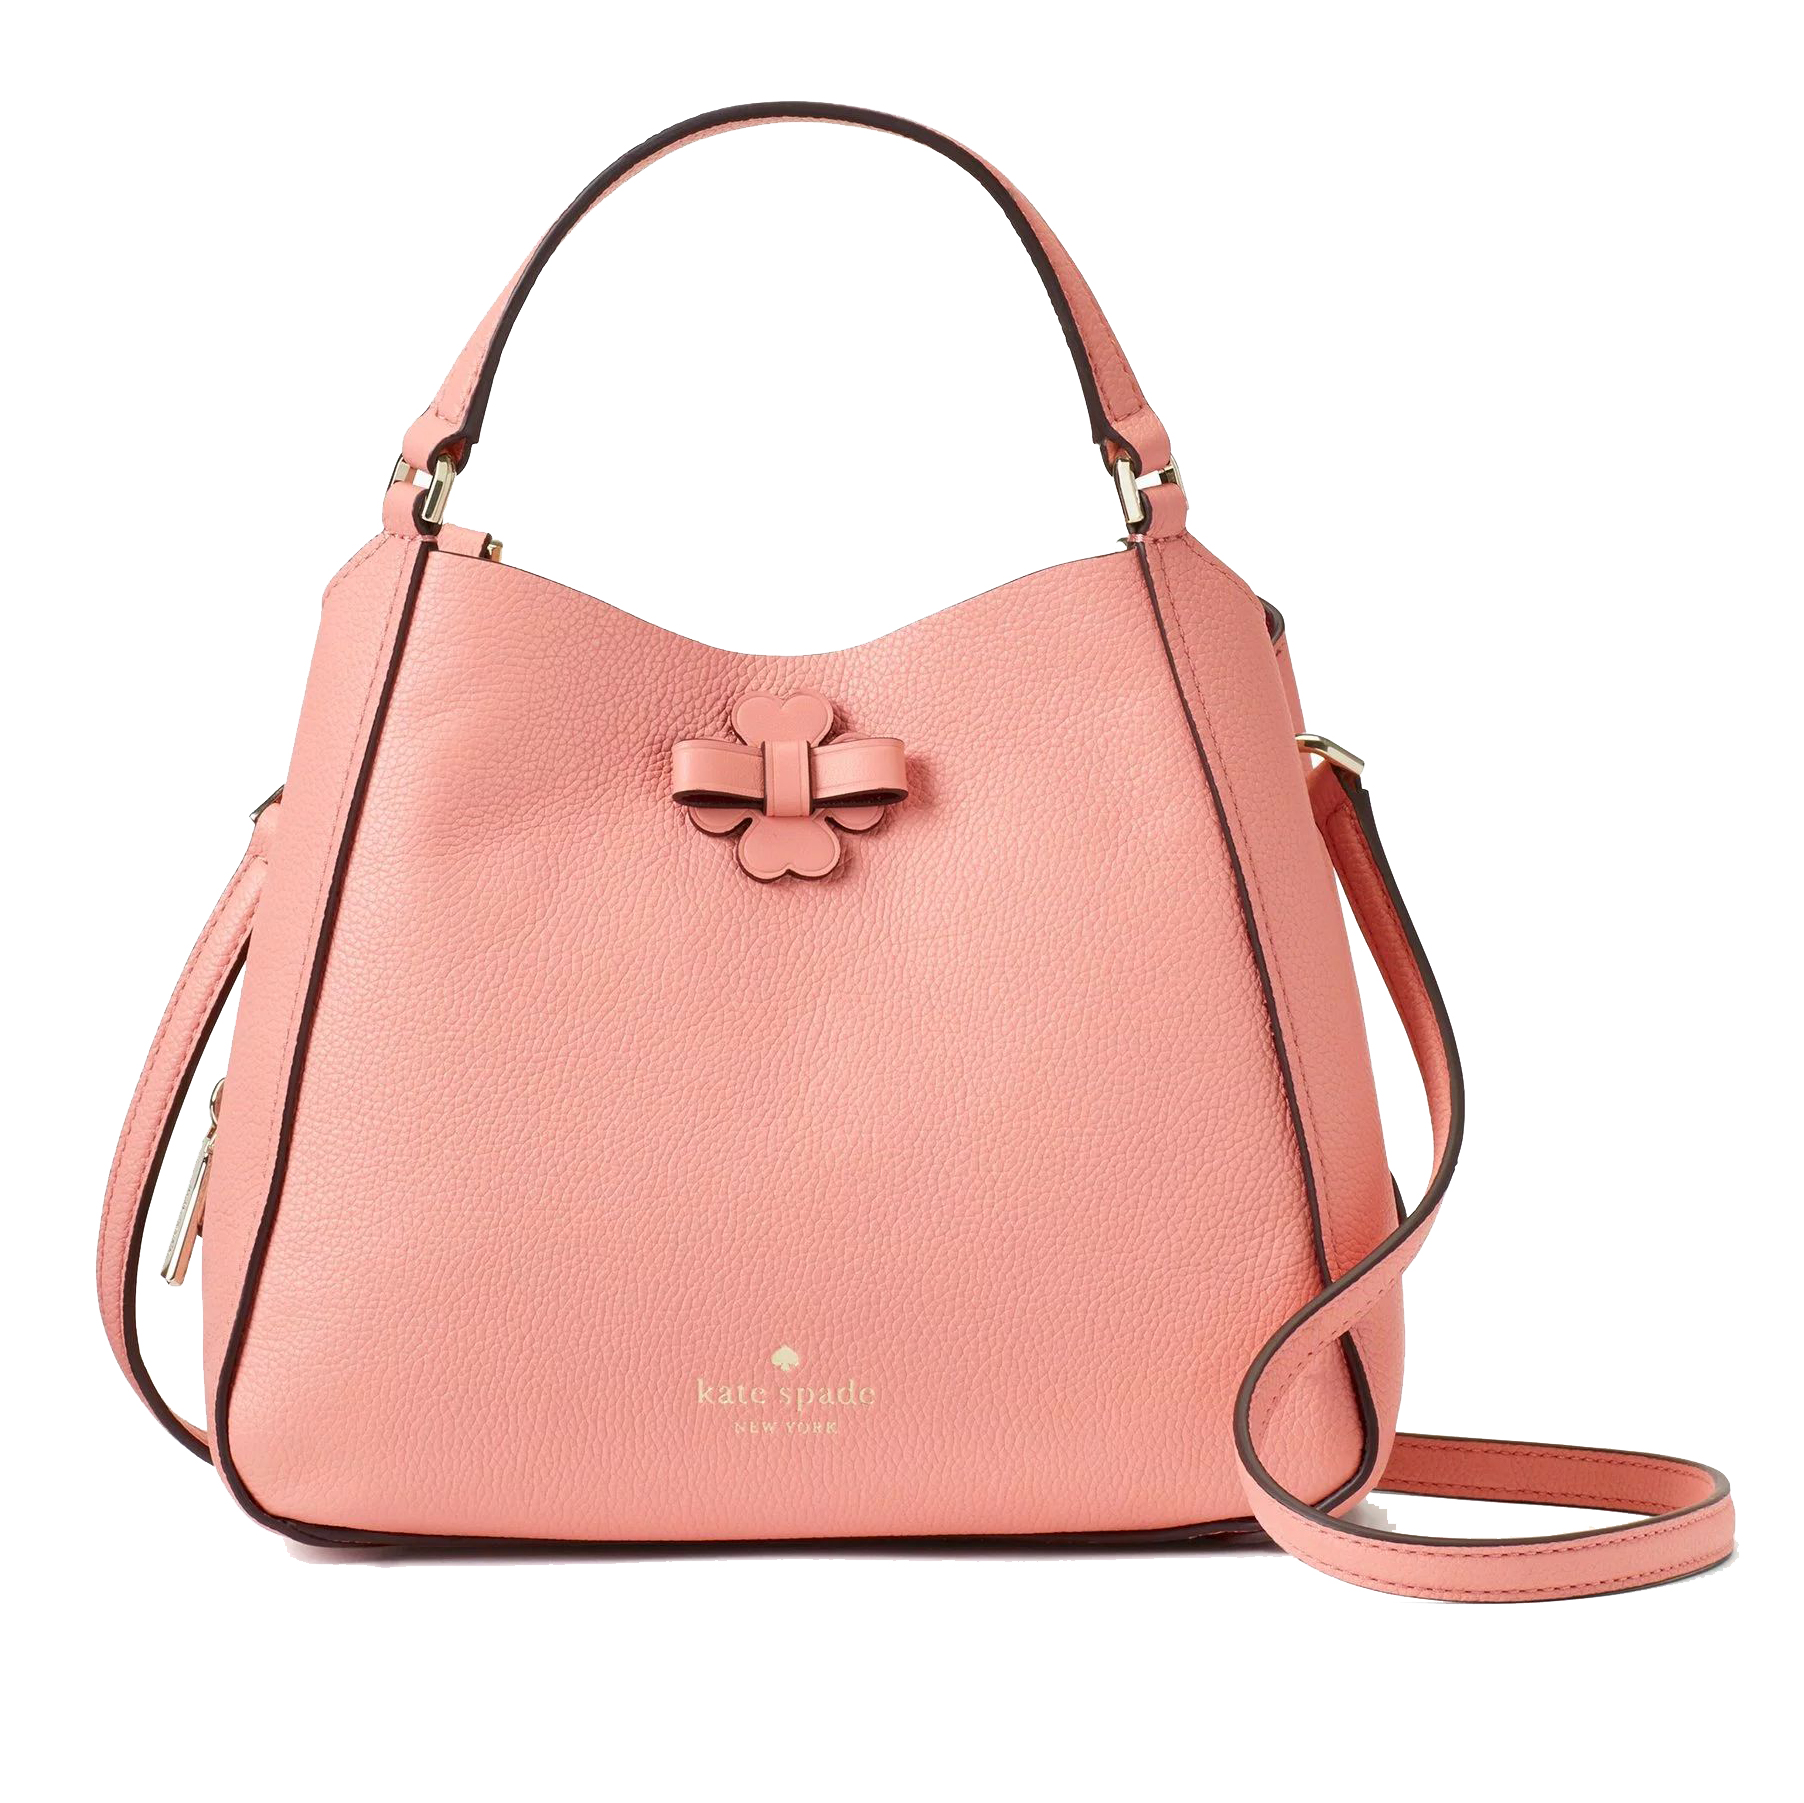 Talia Small Triple Compartment Shoulder Bag